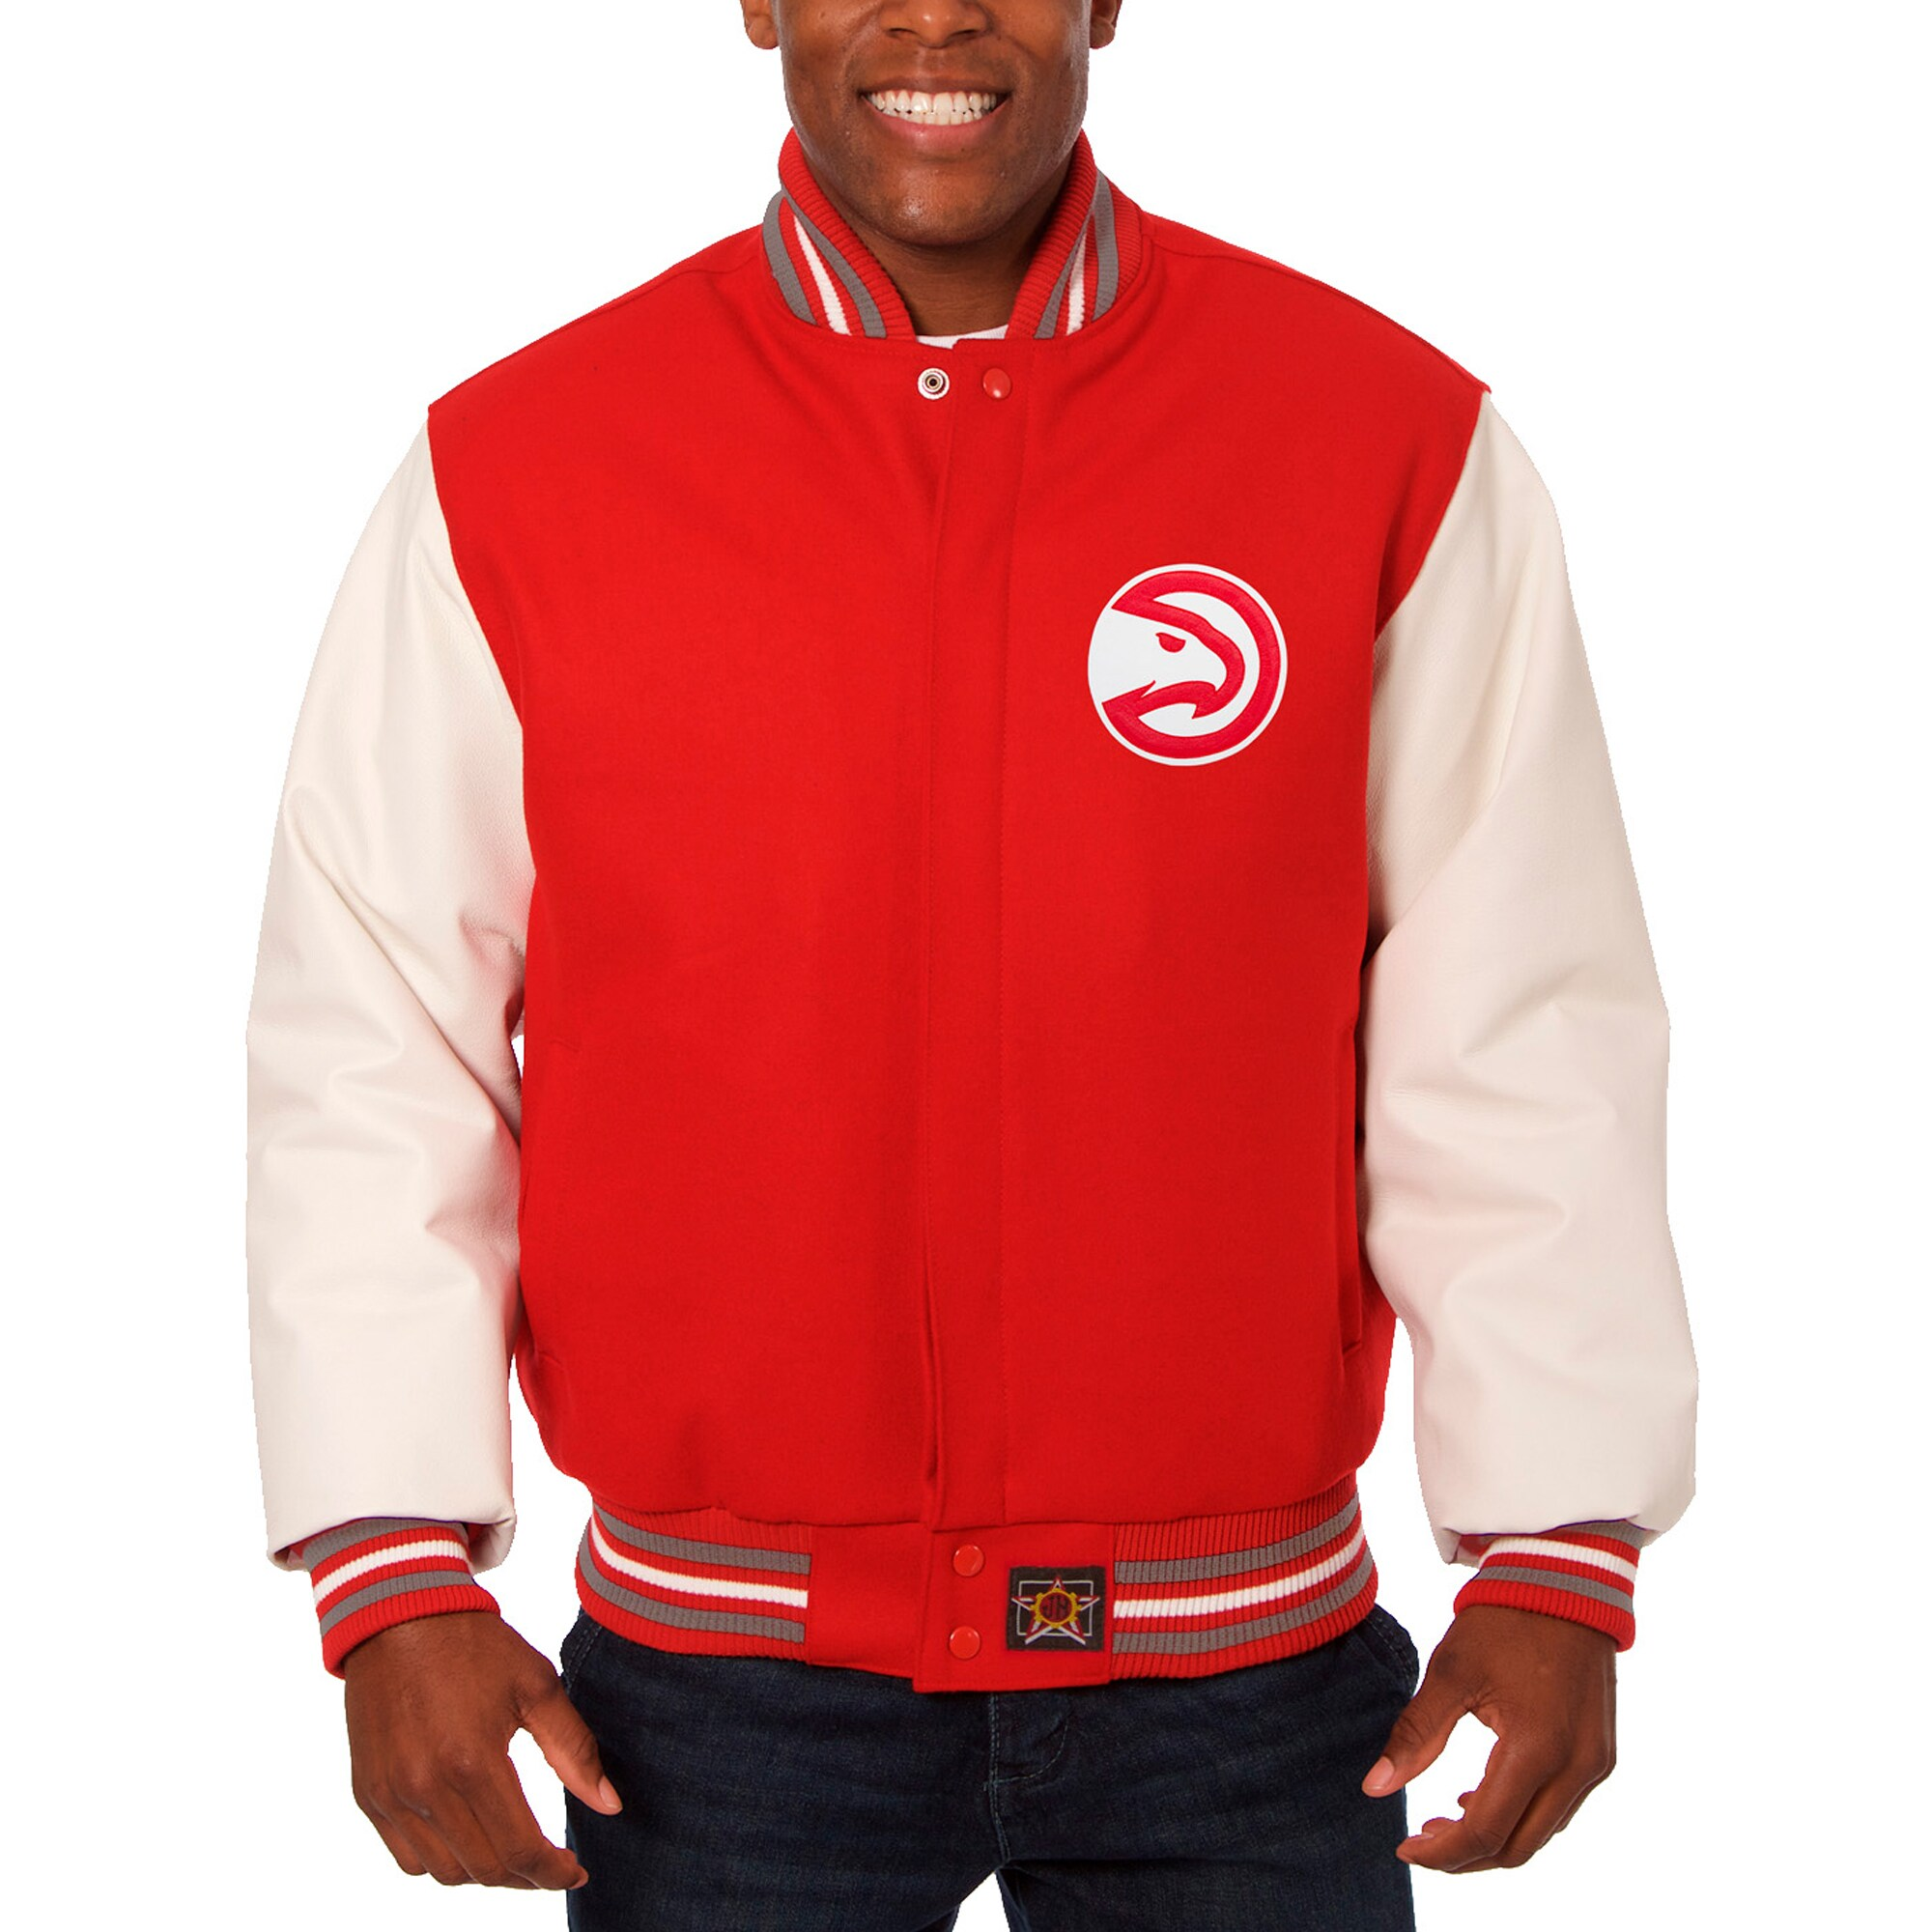 Atlanta Hawks JH Design Big & Tall Wool & Leather Full-Snap Jacket - Red/White